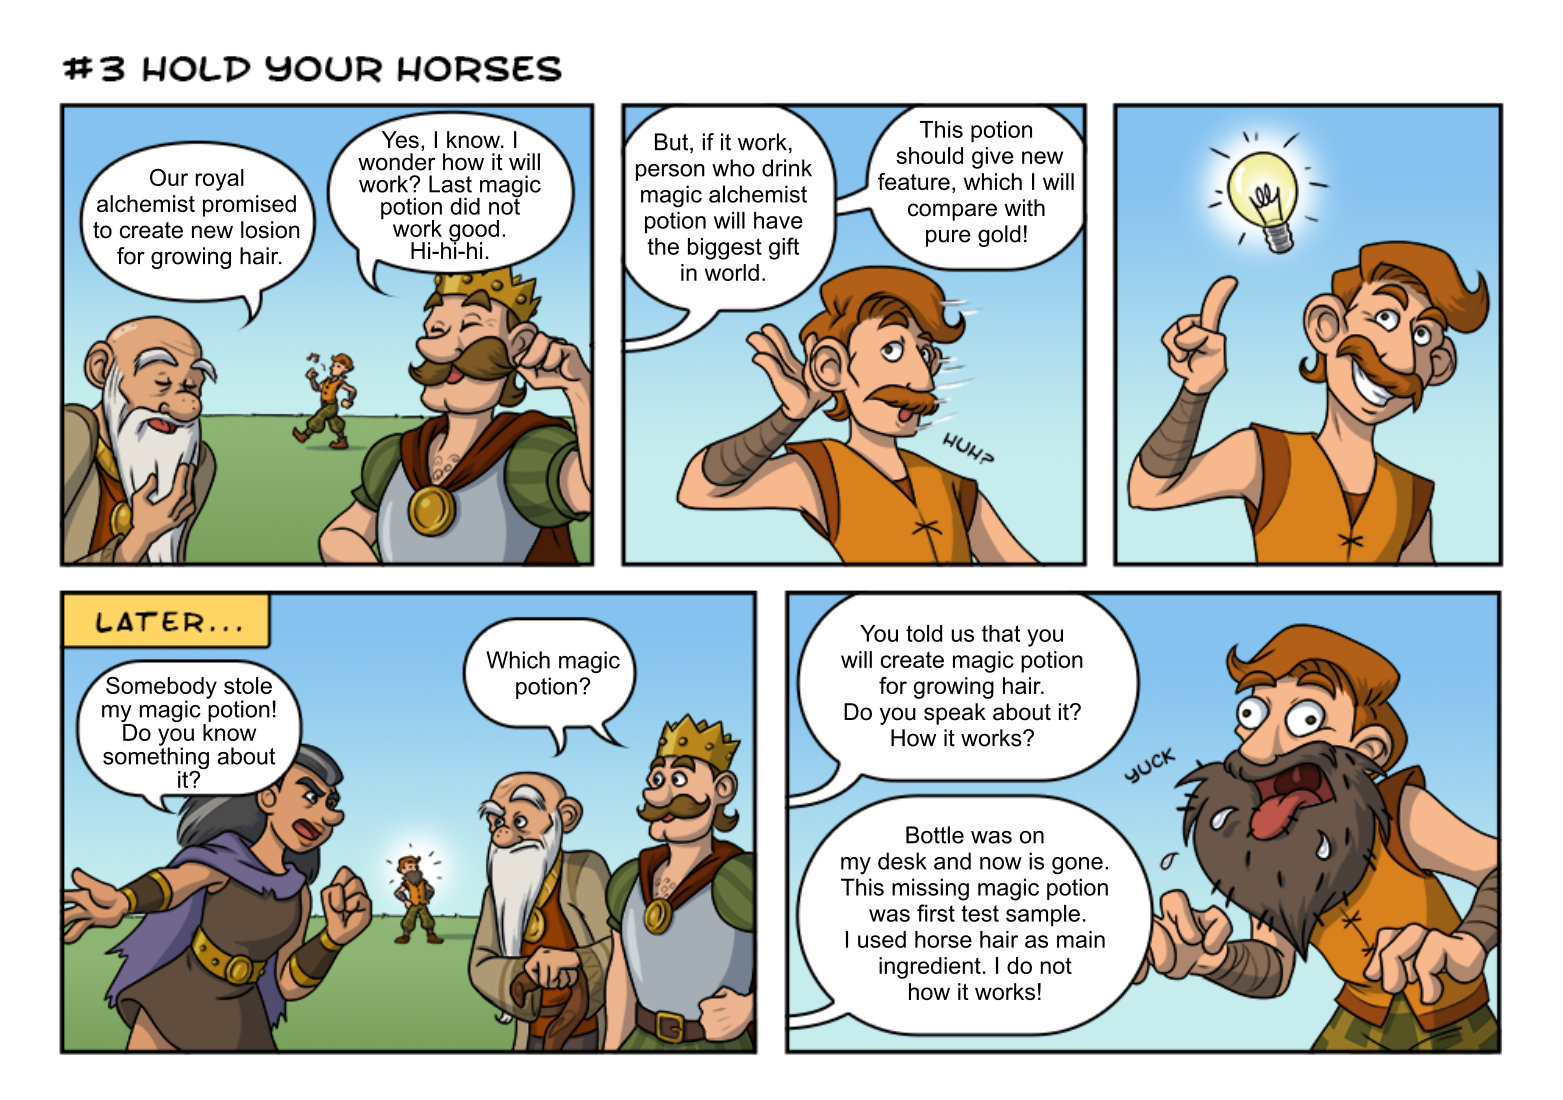 Comic strip contest #12.12 - Find your own words - Contests